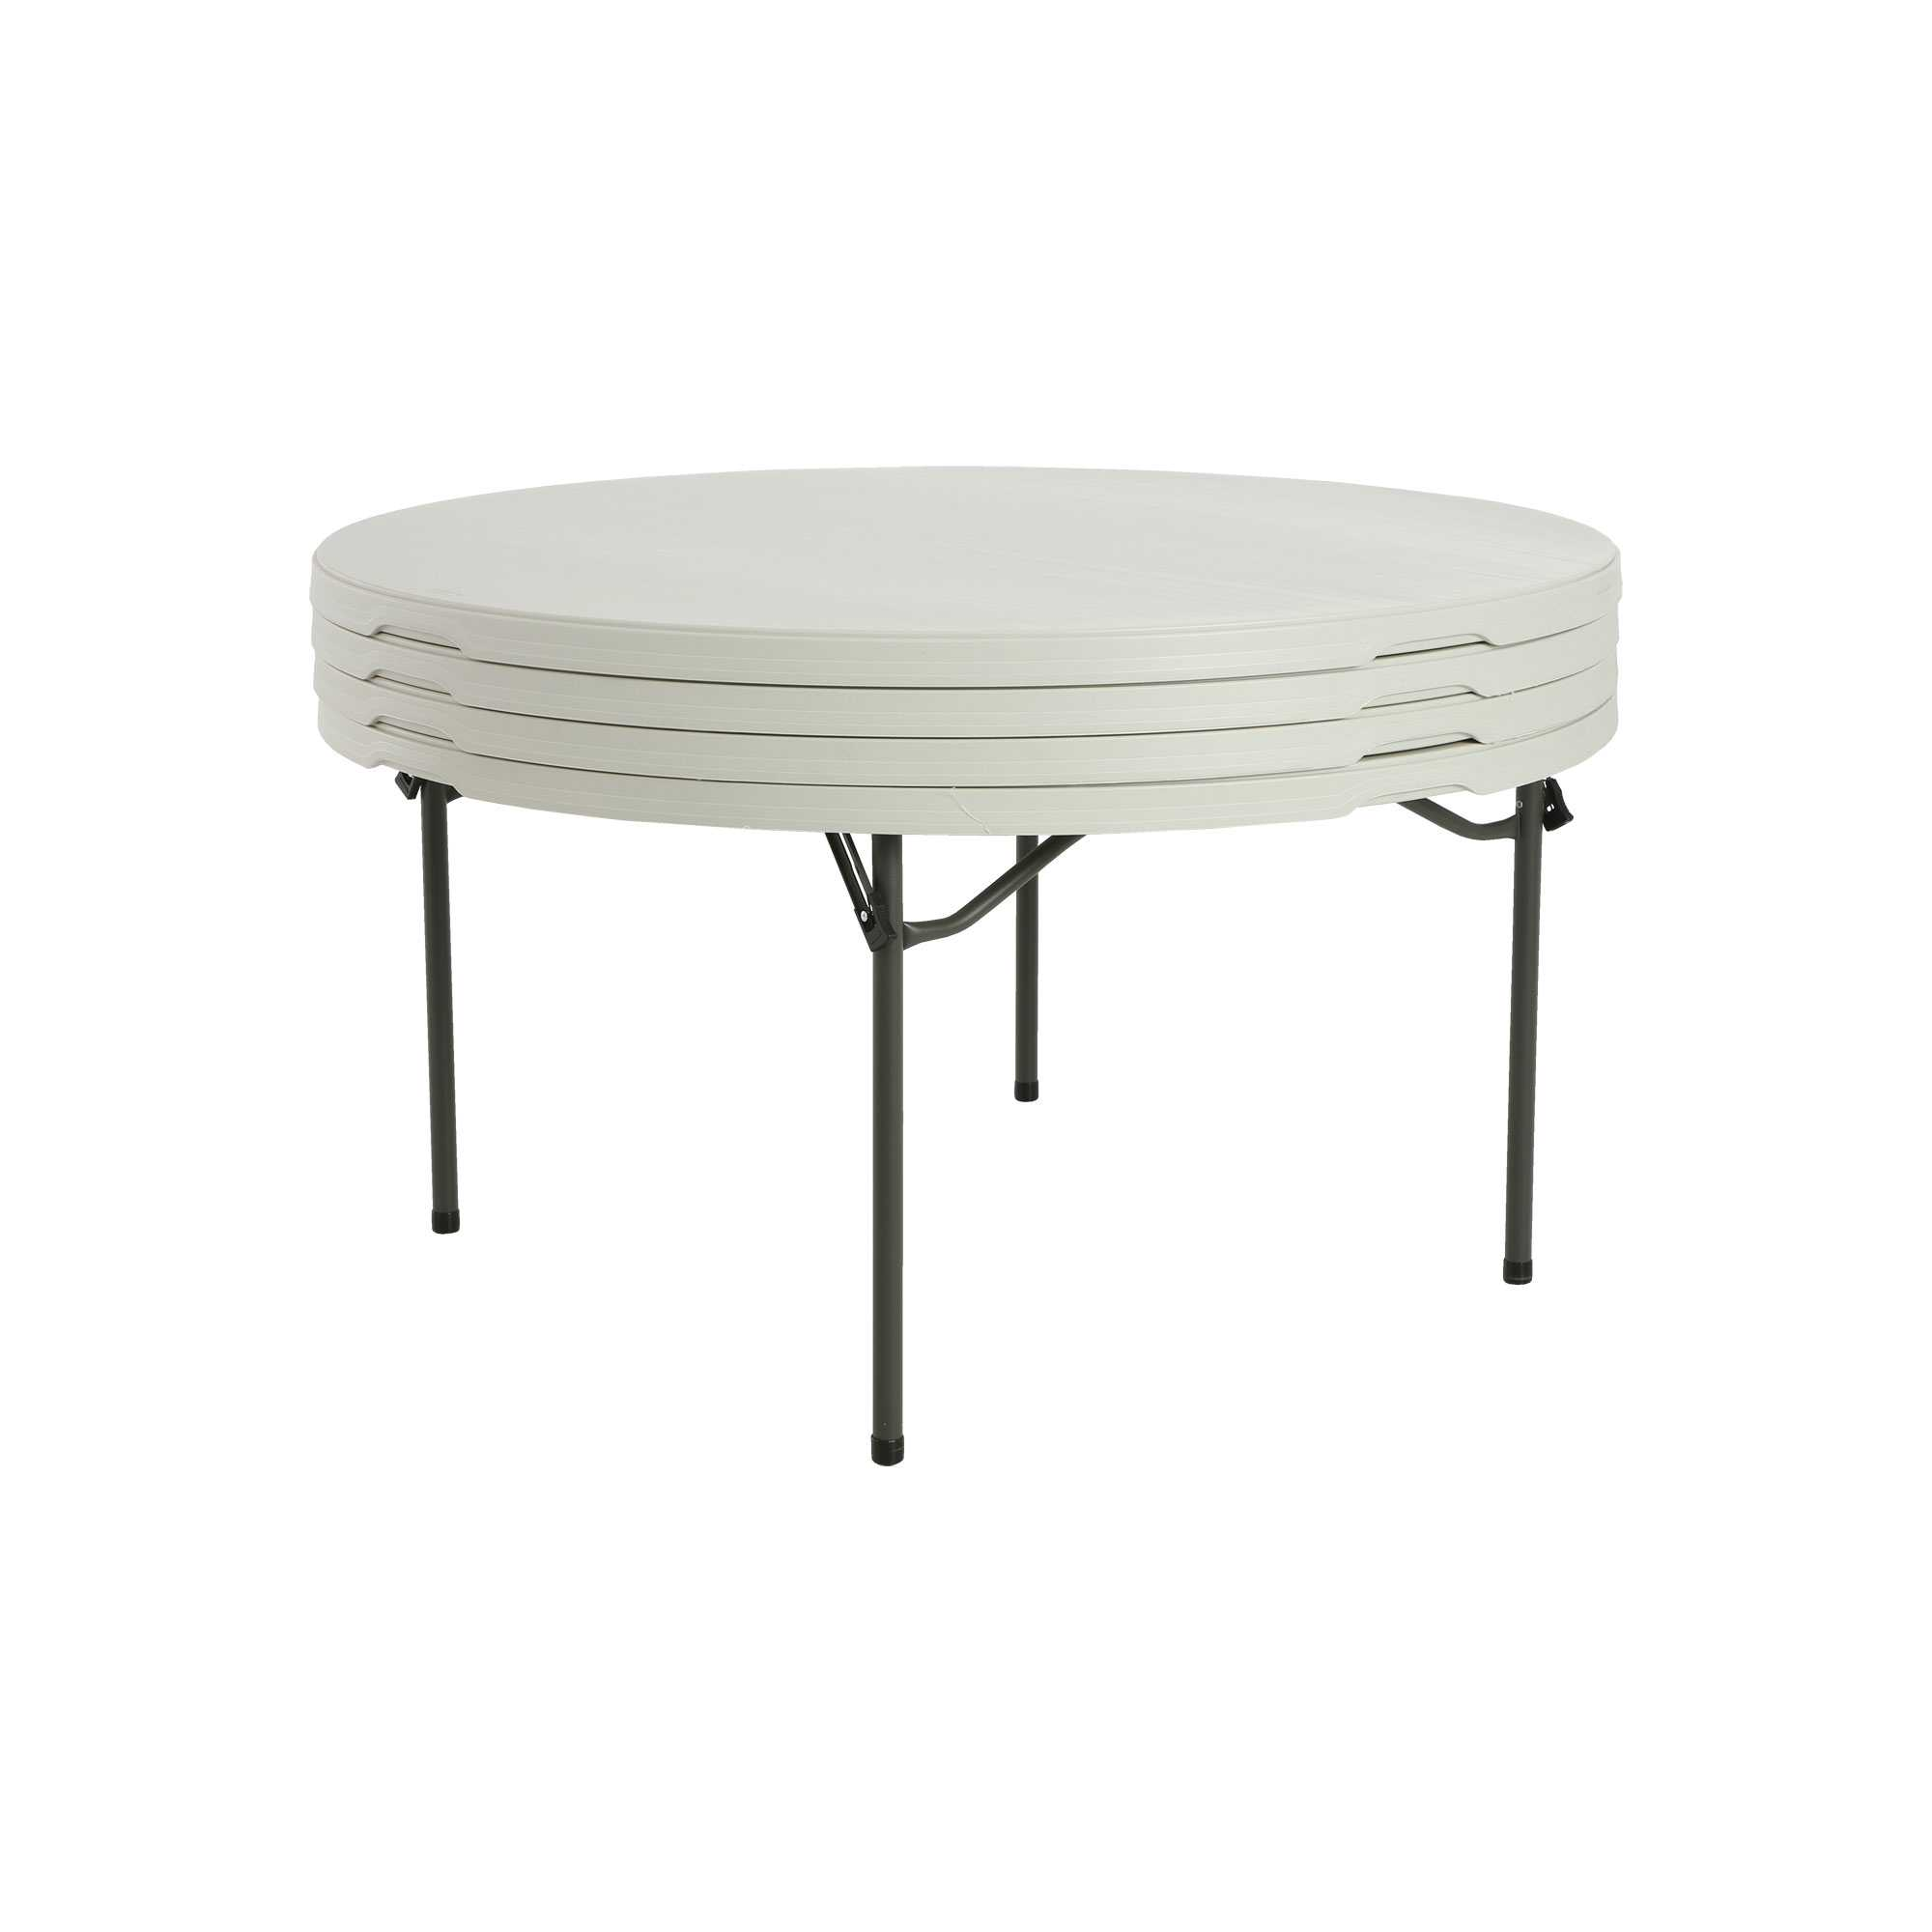 Lifetime Round Folding Tables 80435 60 Inch 15 Pack